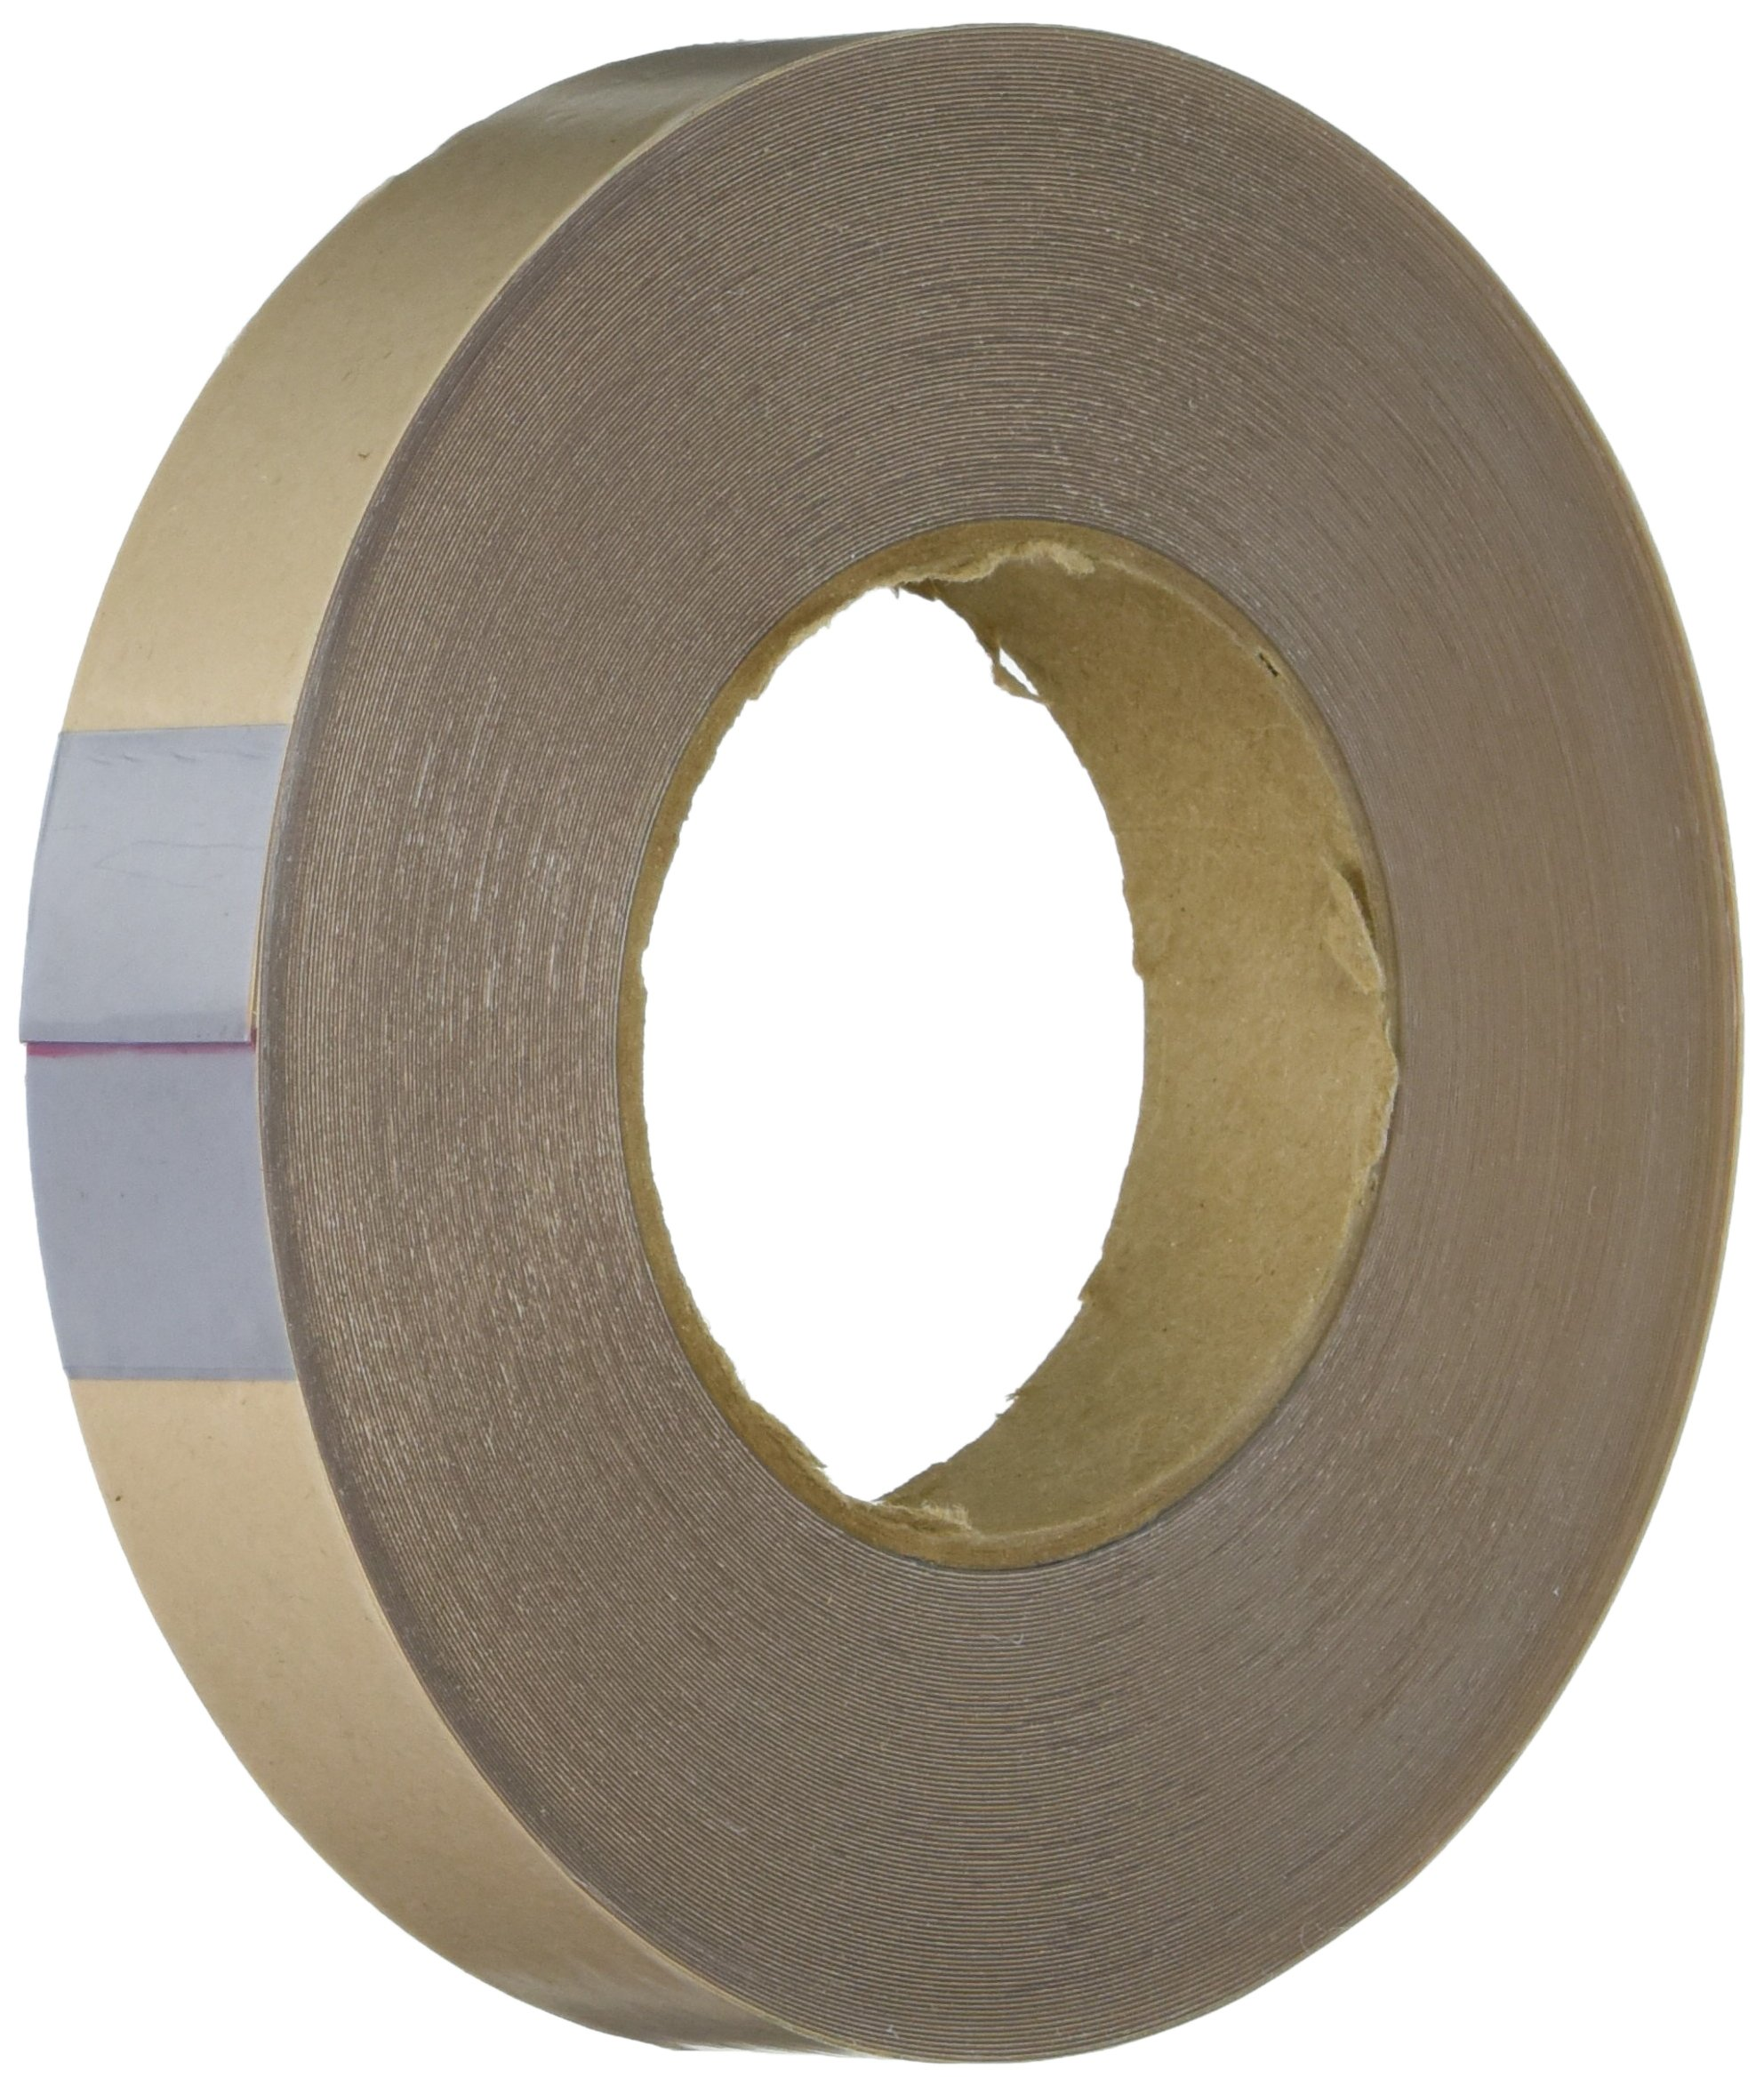 CS Hyde 19-5R UHMW .005 Mil Tape with Rubber Adhesive, 1'' x 36 Yards